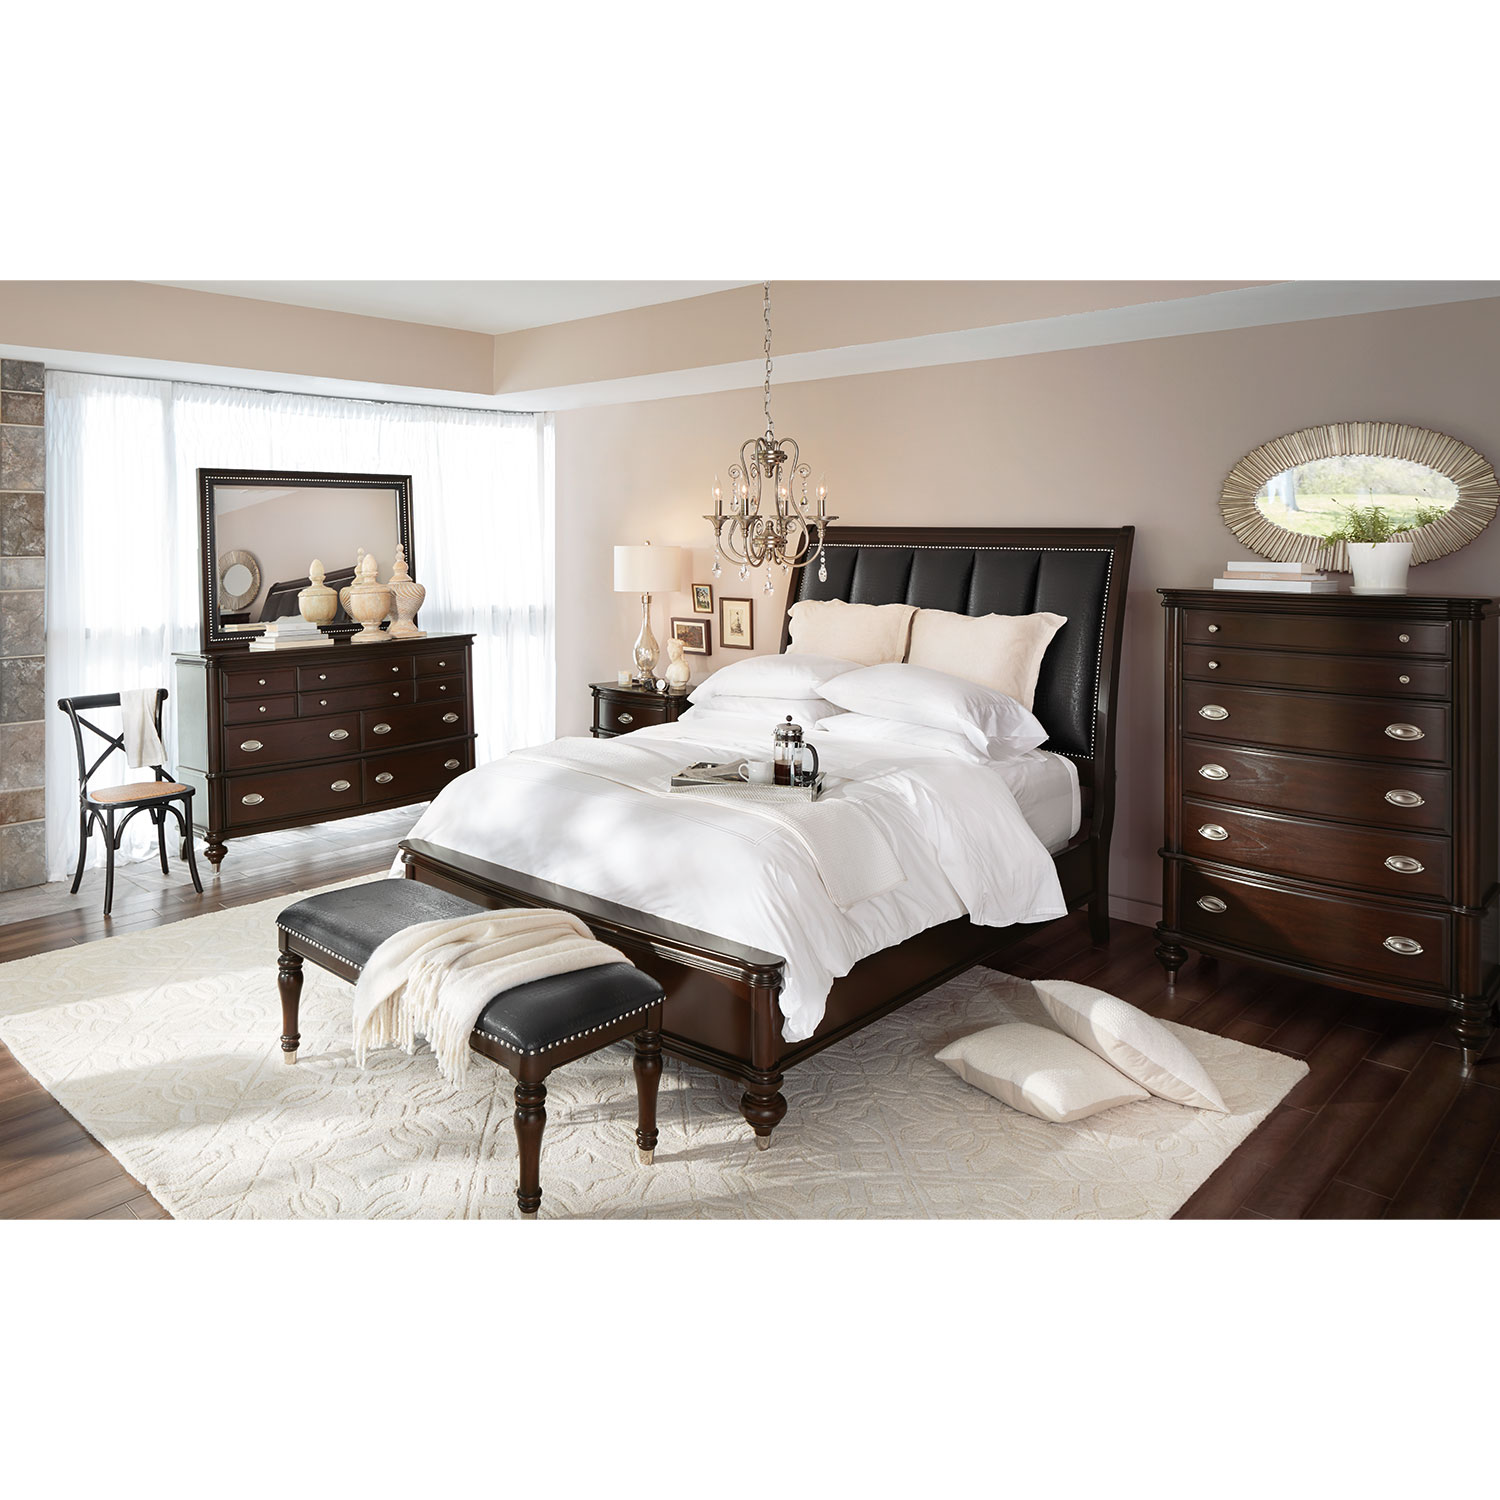 Esquire 5 Piece Queen Bedroom Set   Merlot